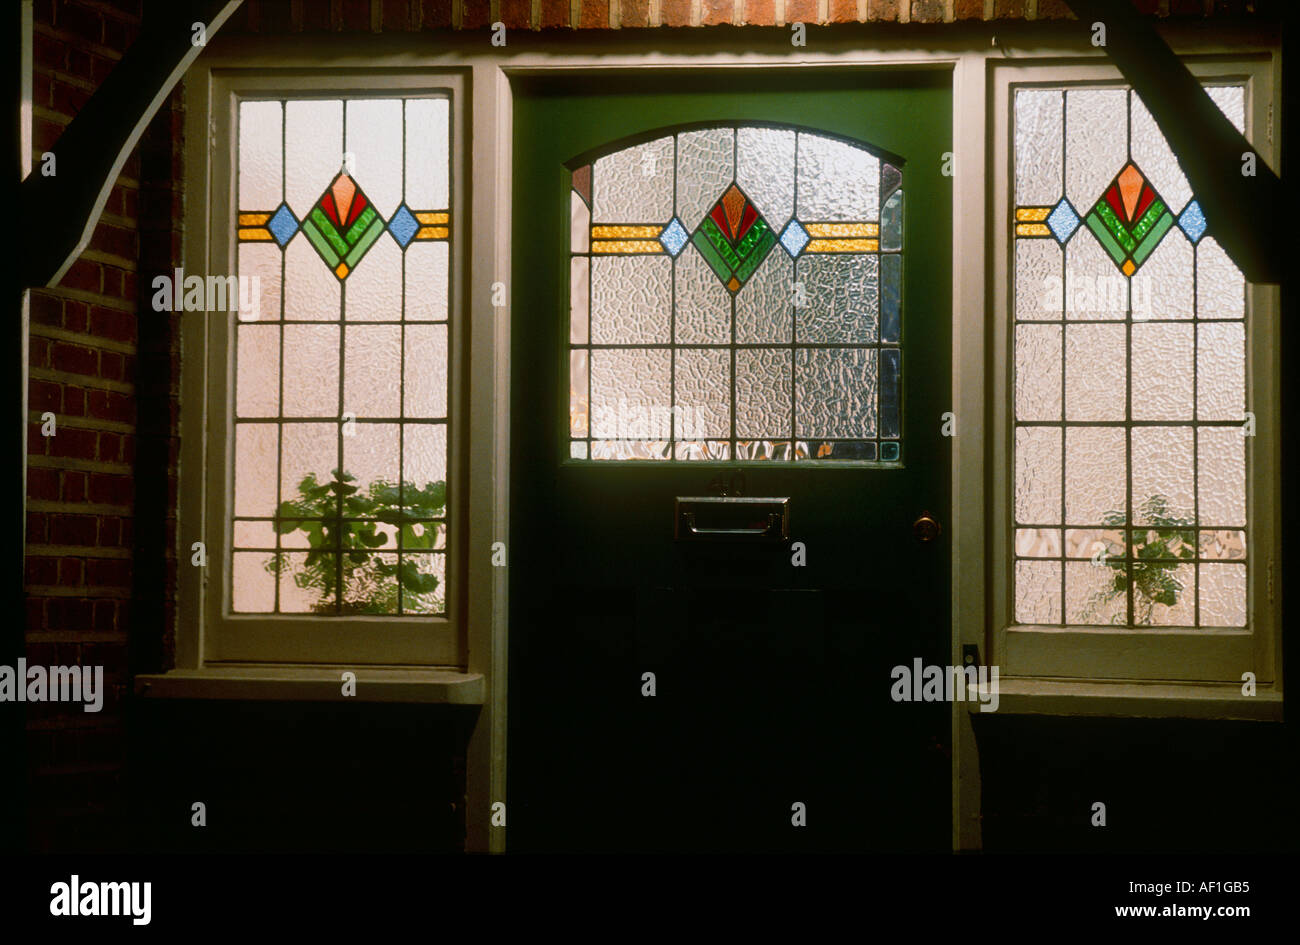 Art Deco Stained Glass Front Door At Night British Housing